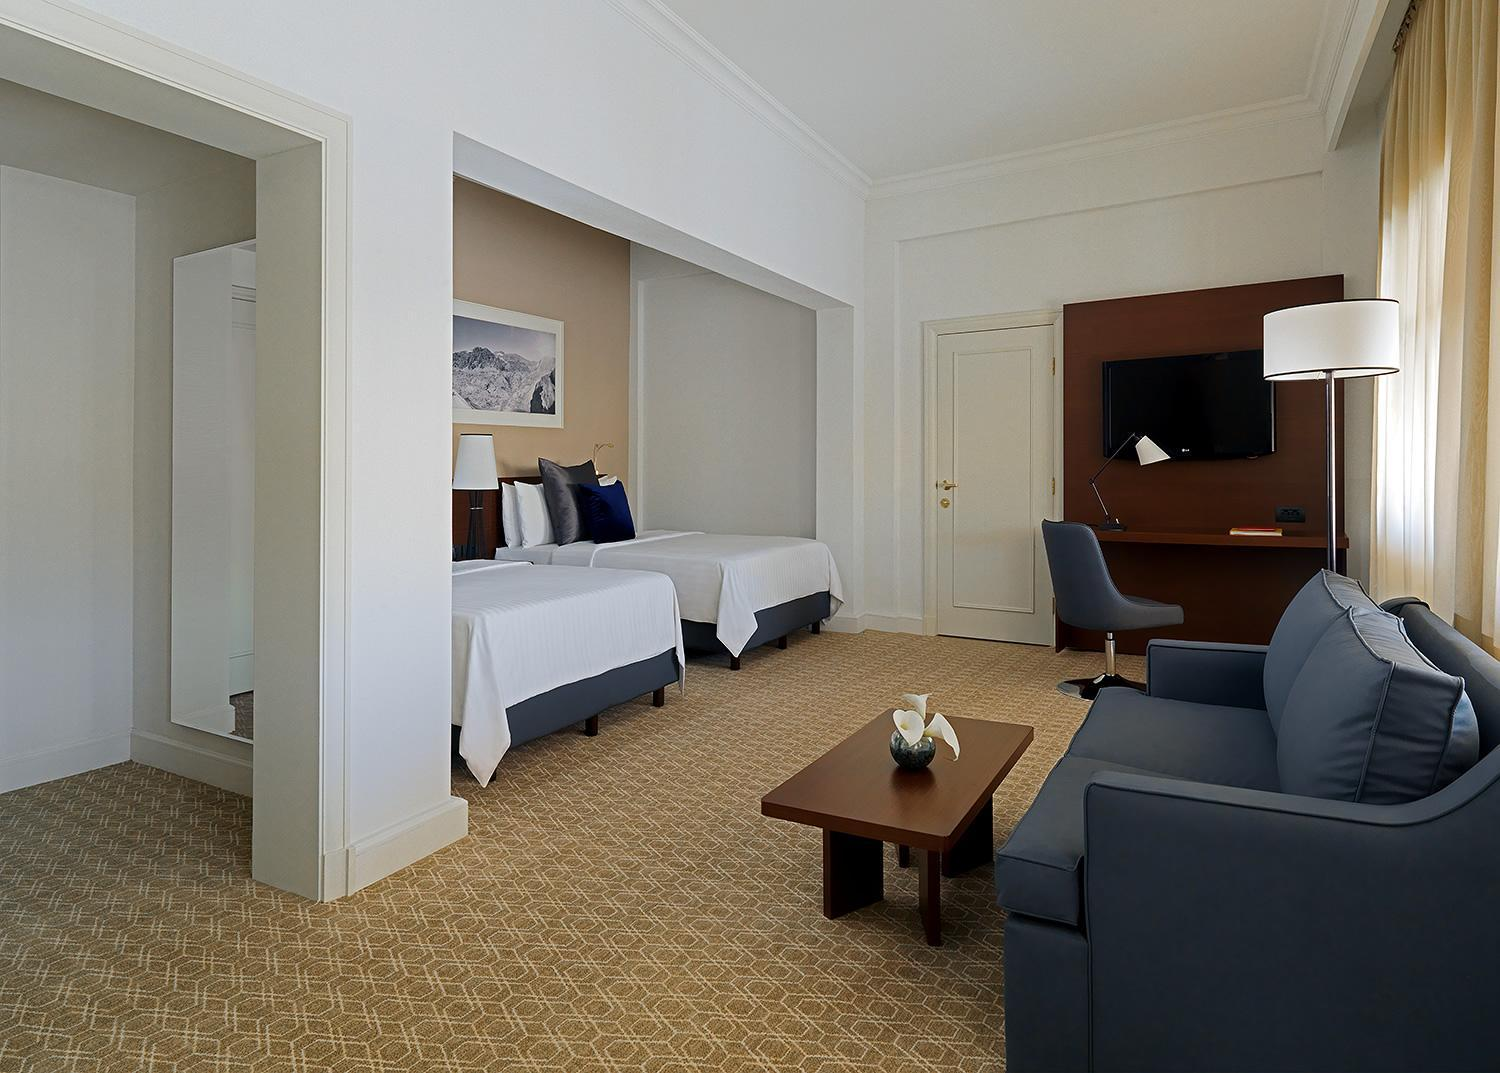 Kamar Executive Level – Termasuk Akses Executive Lounge (Executive Level, Executive lounge access, Guest room)